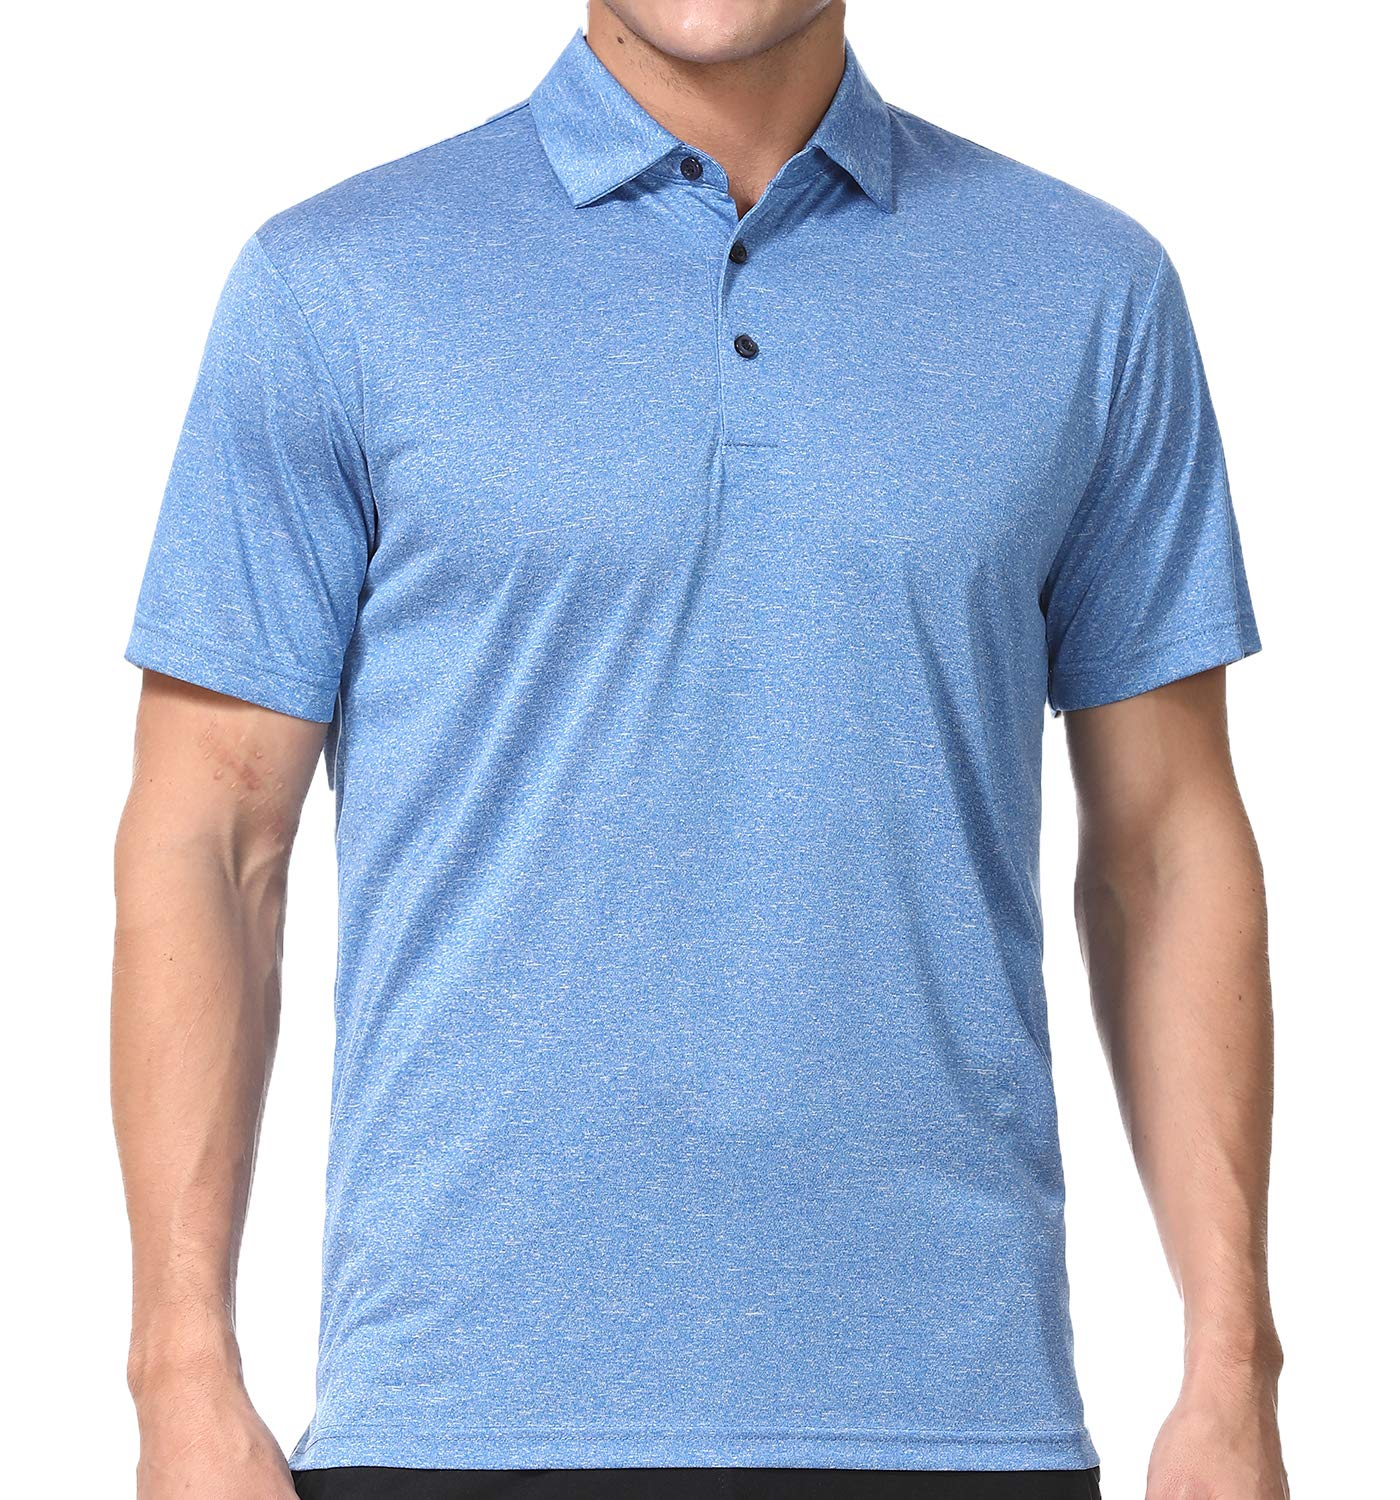 Men's Polo Shirts - Dry Fit Performance Short Sleeve Glof Polo T Shirt for Men (M, Light Blue) by COSSNISS